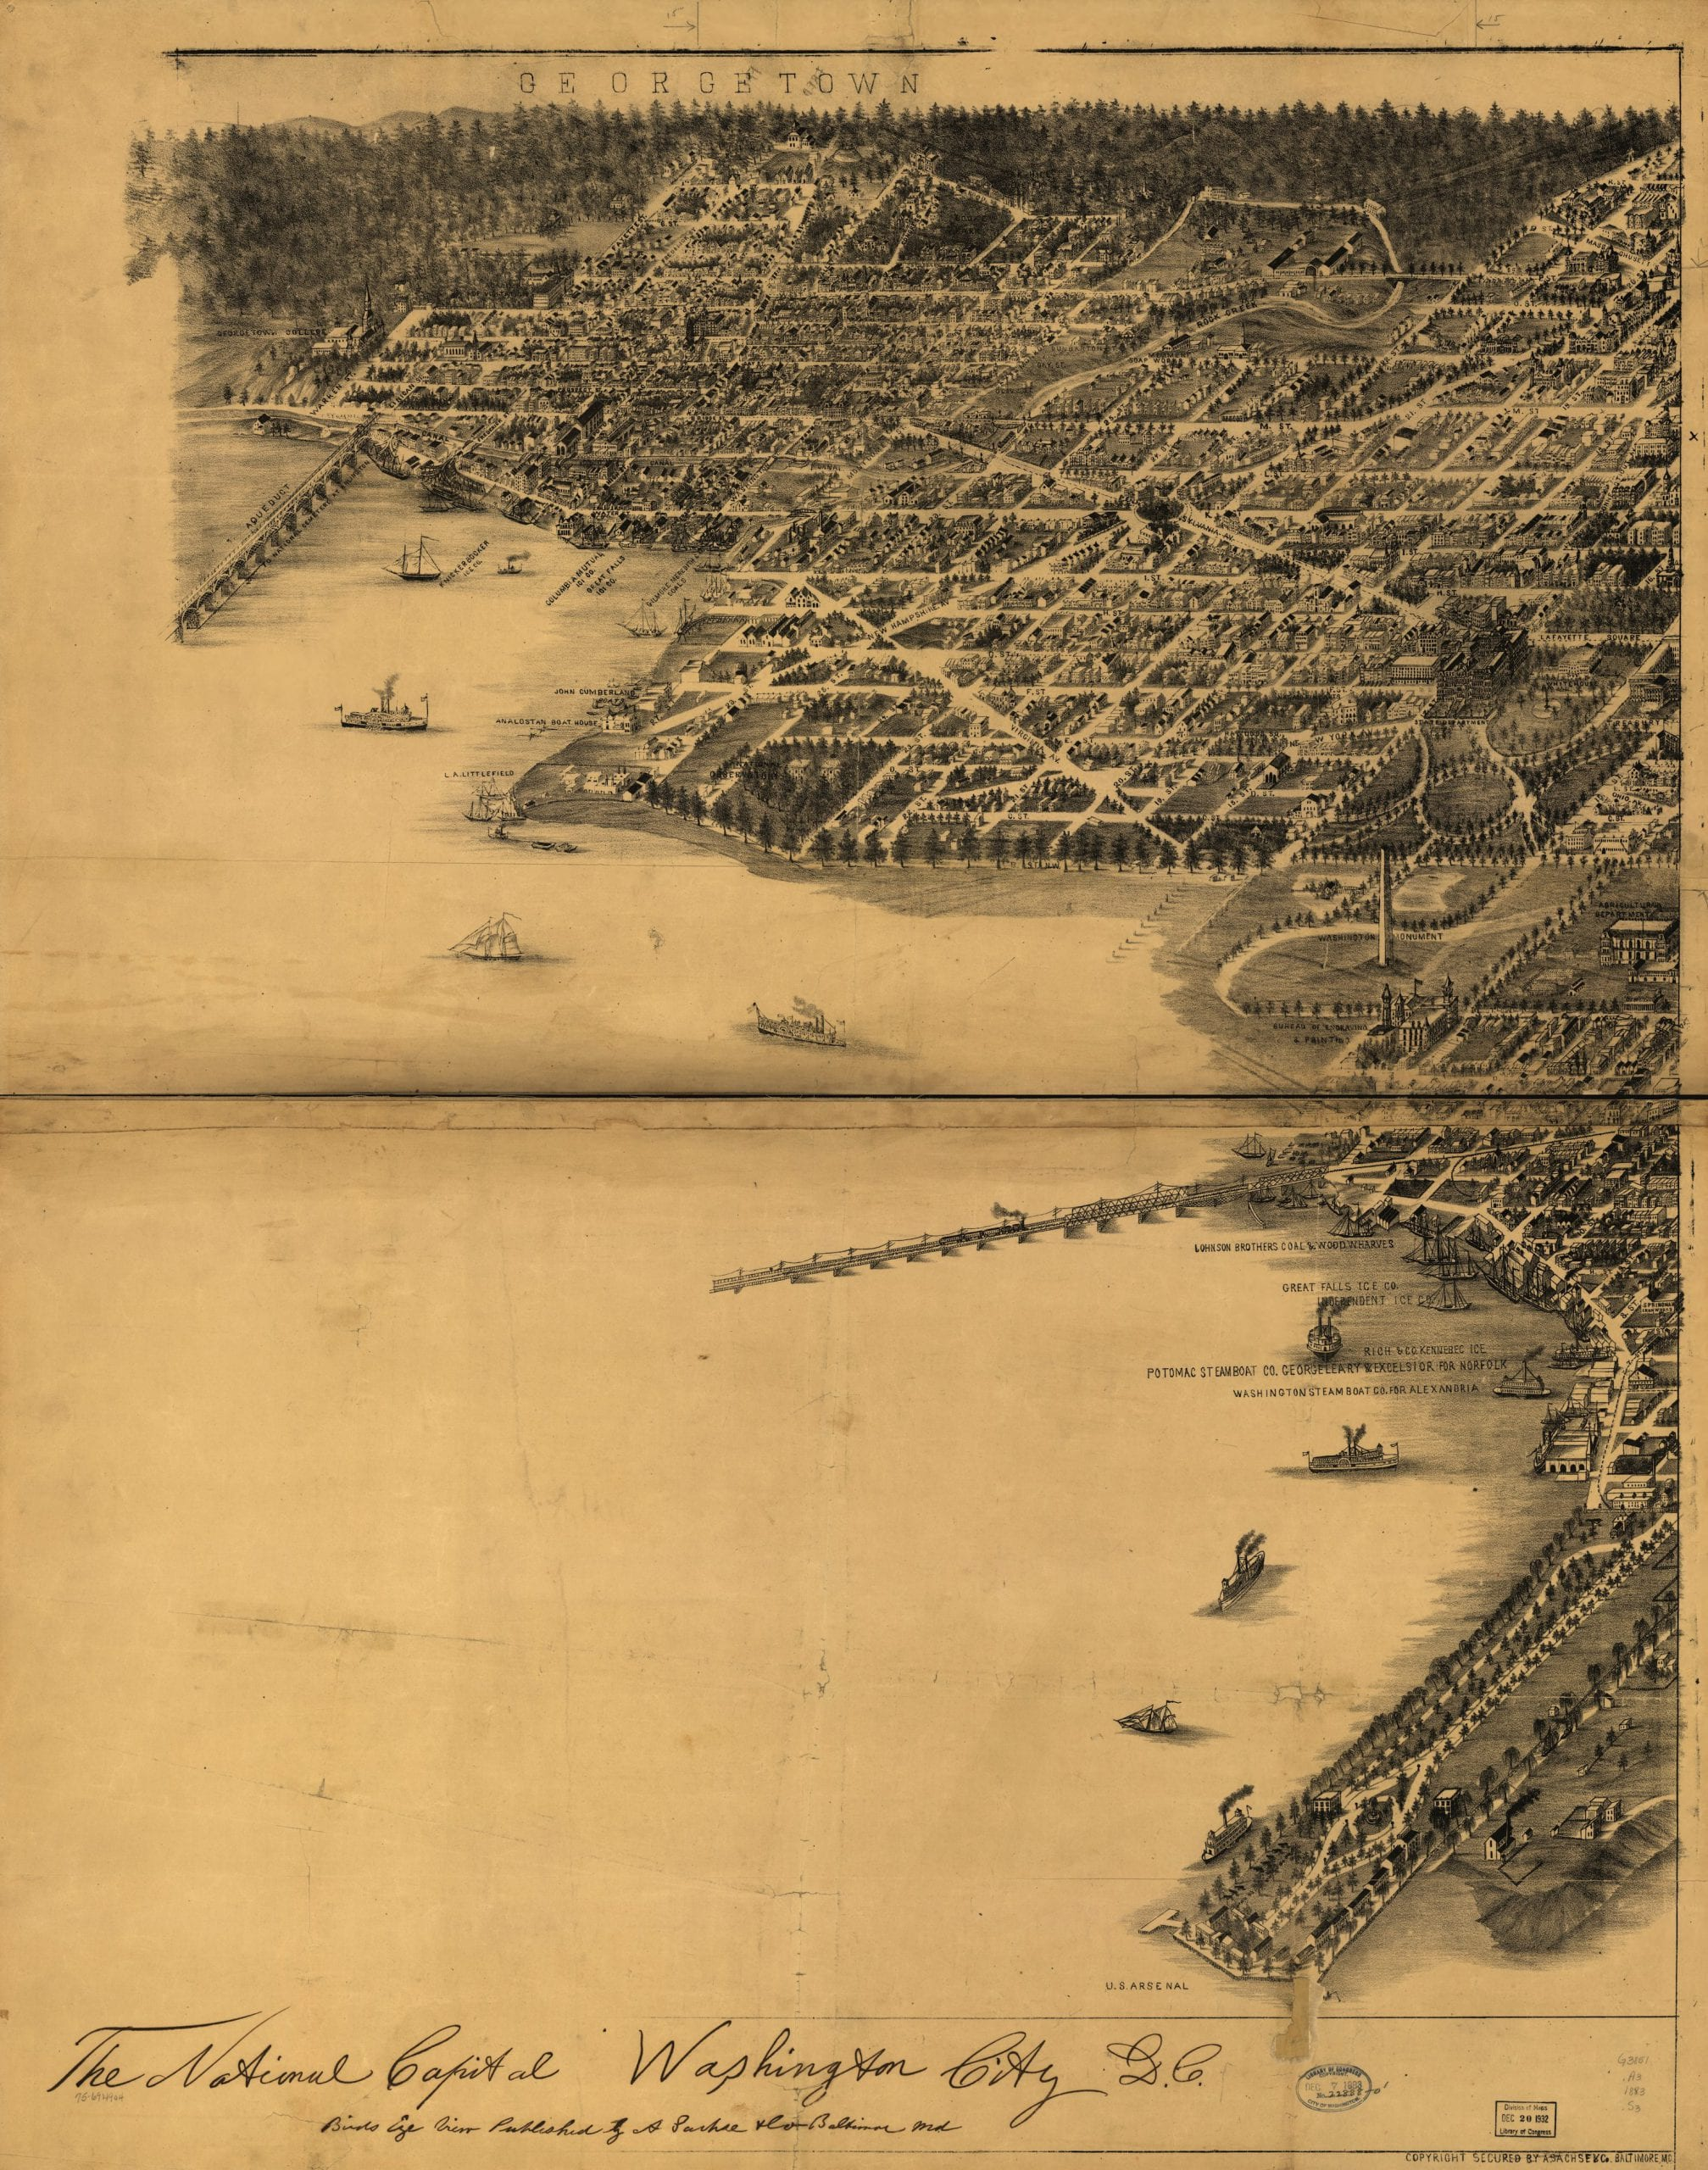 1883 bird's eye view of Washington